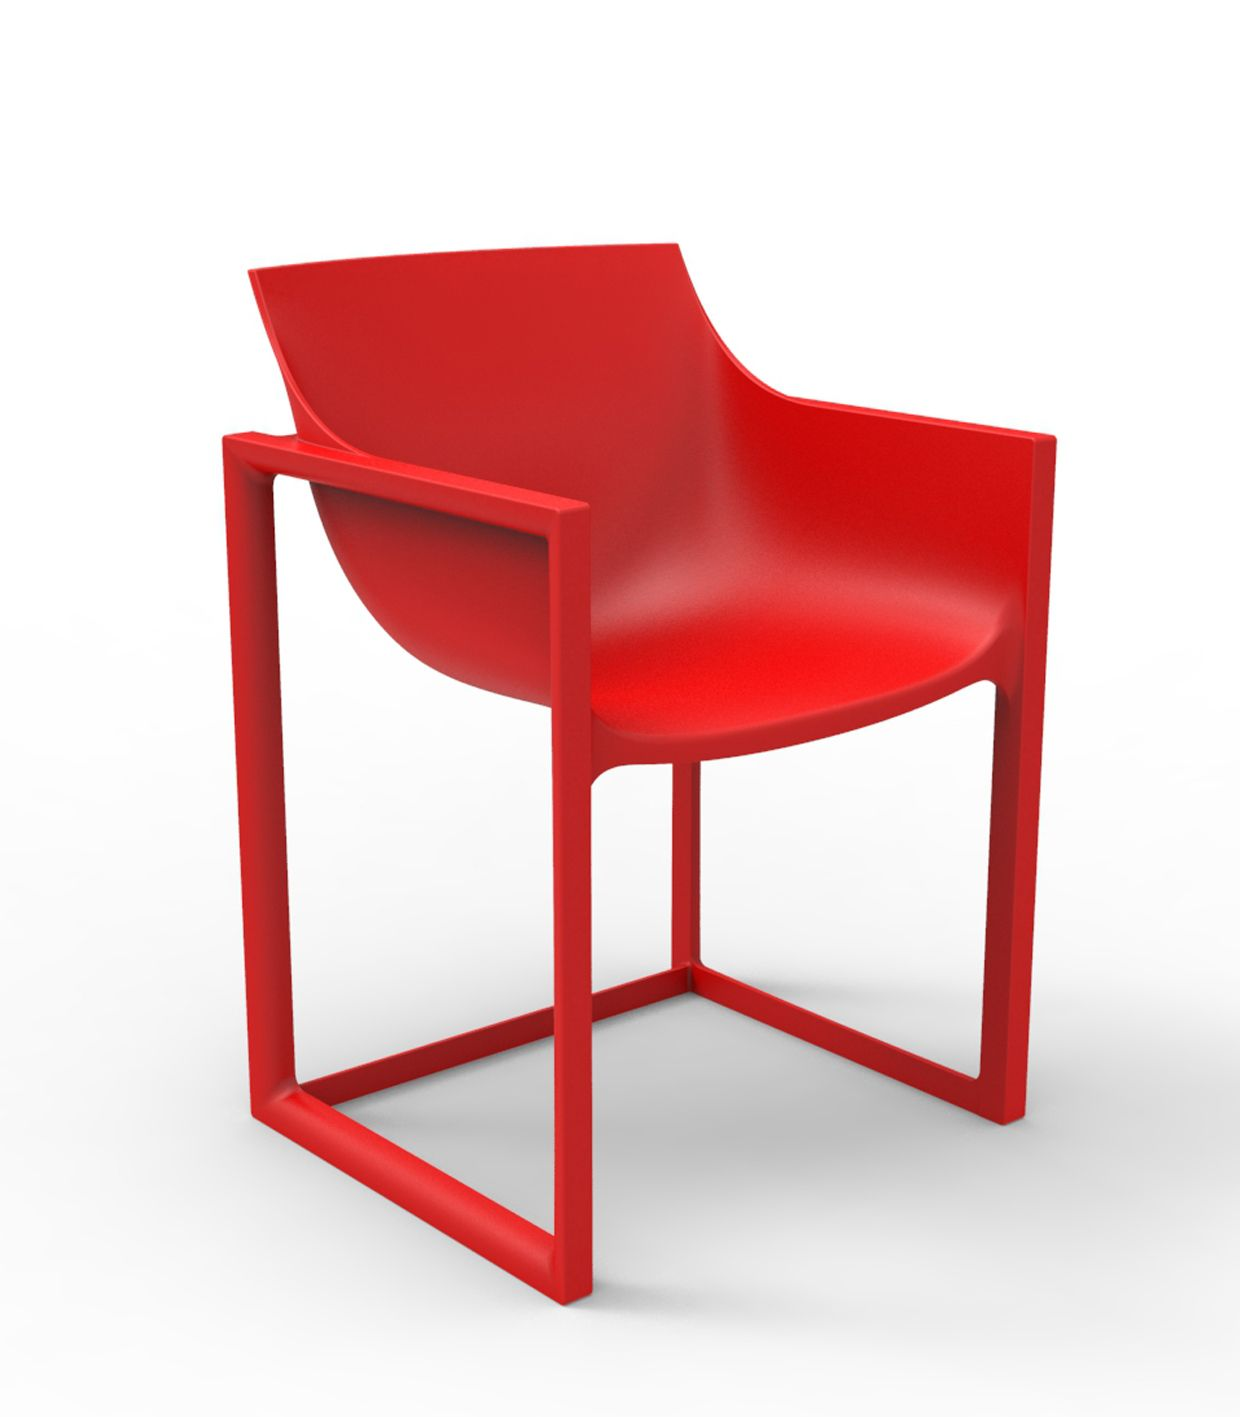 Wall Street Chair By Vondom Will Fit Inside And Outside On A Terrace. Its  Enveloping